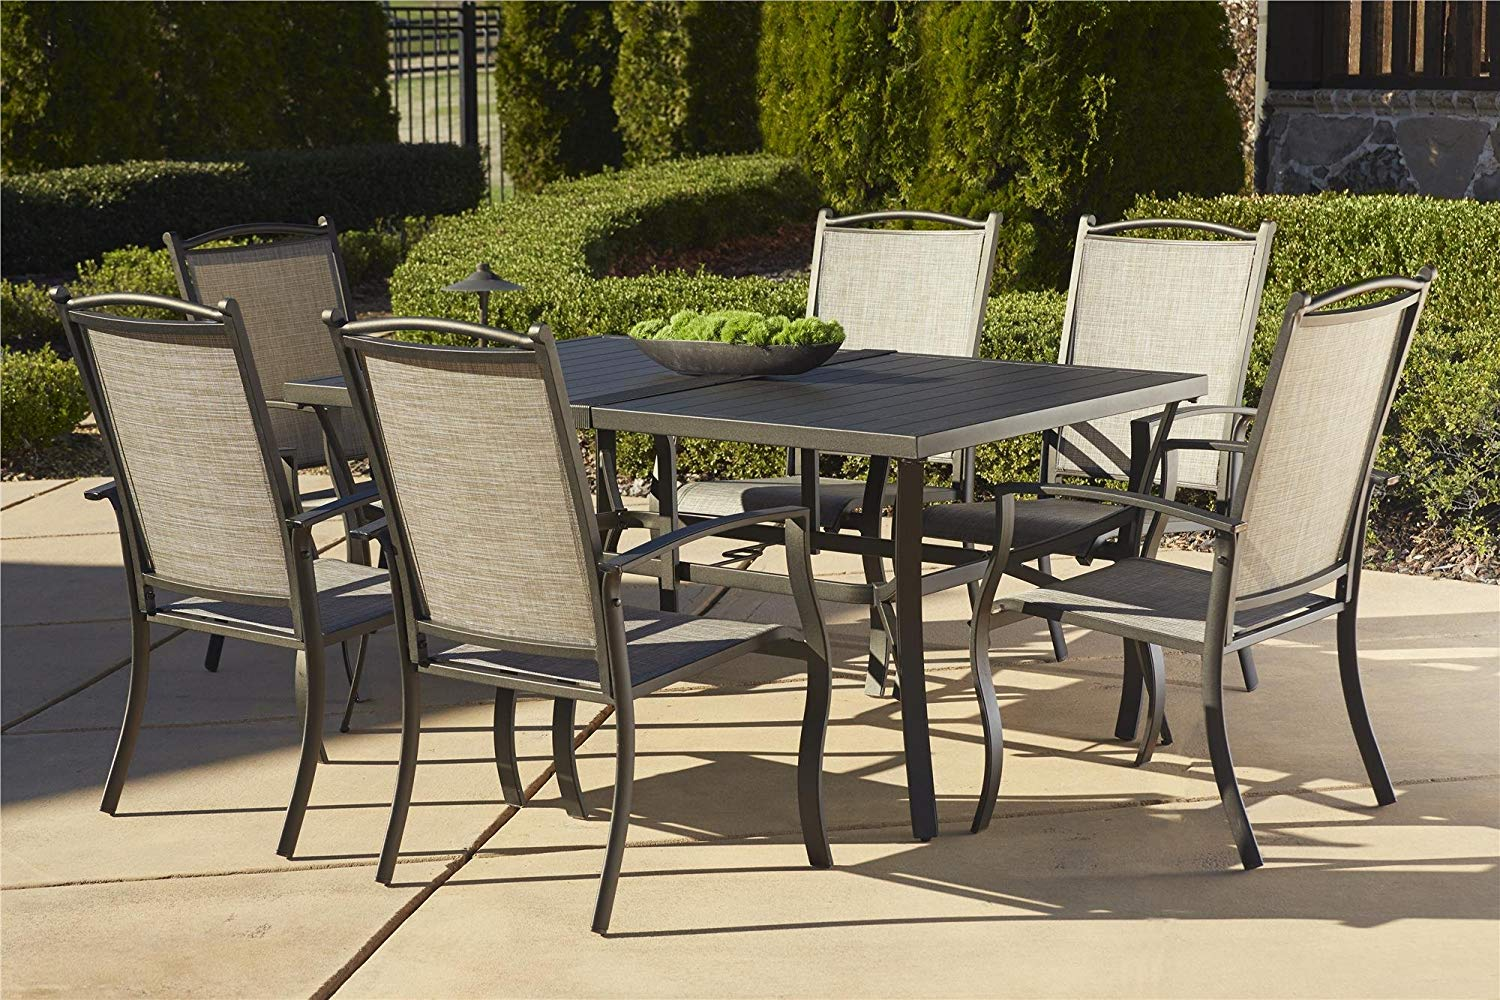 patio table sets amazon.com: cosco outdoor 7 piece serene ridge aluminum patio dining set, ISKPQVD